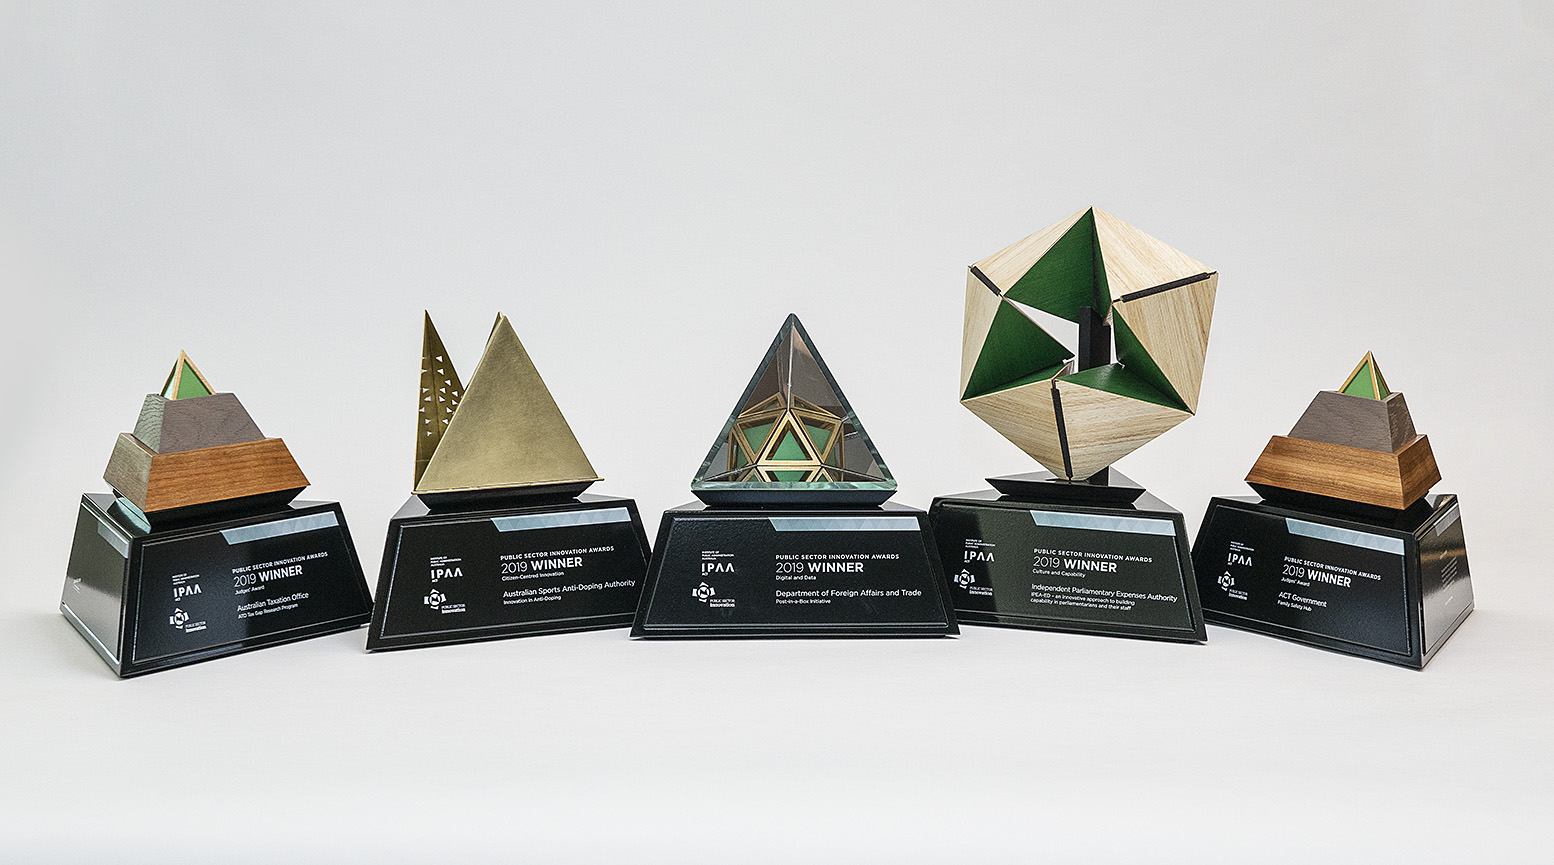 2019 Public Sector Innovation Award trophies designed and built by Questacon